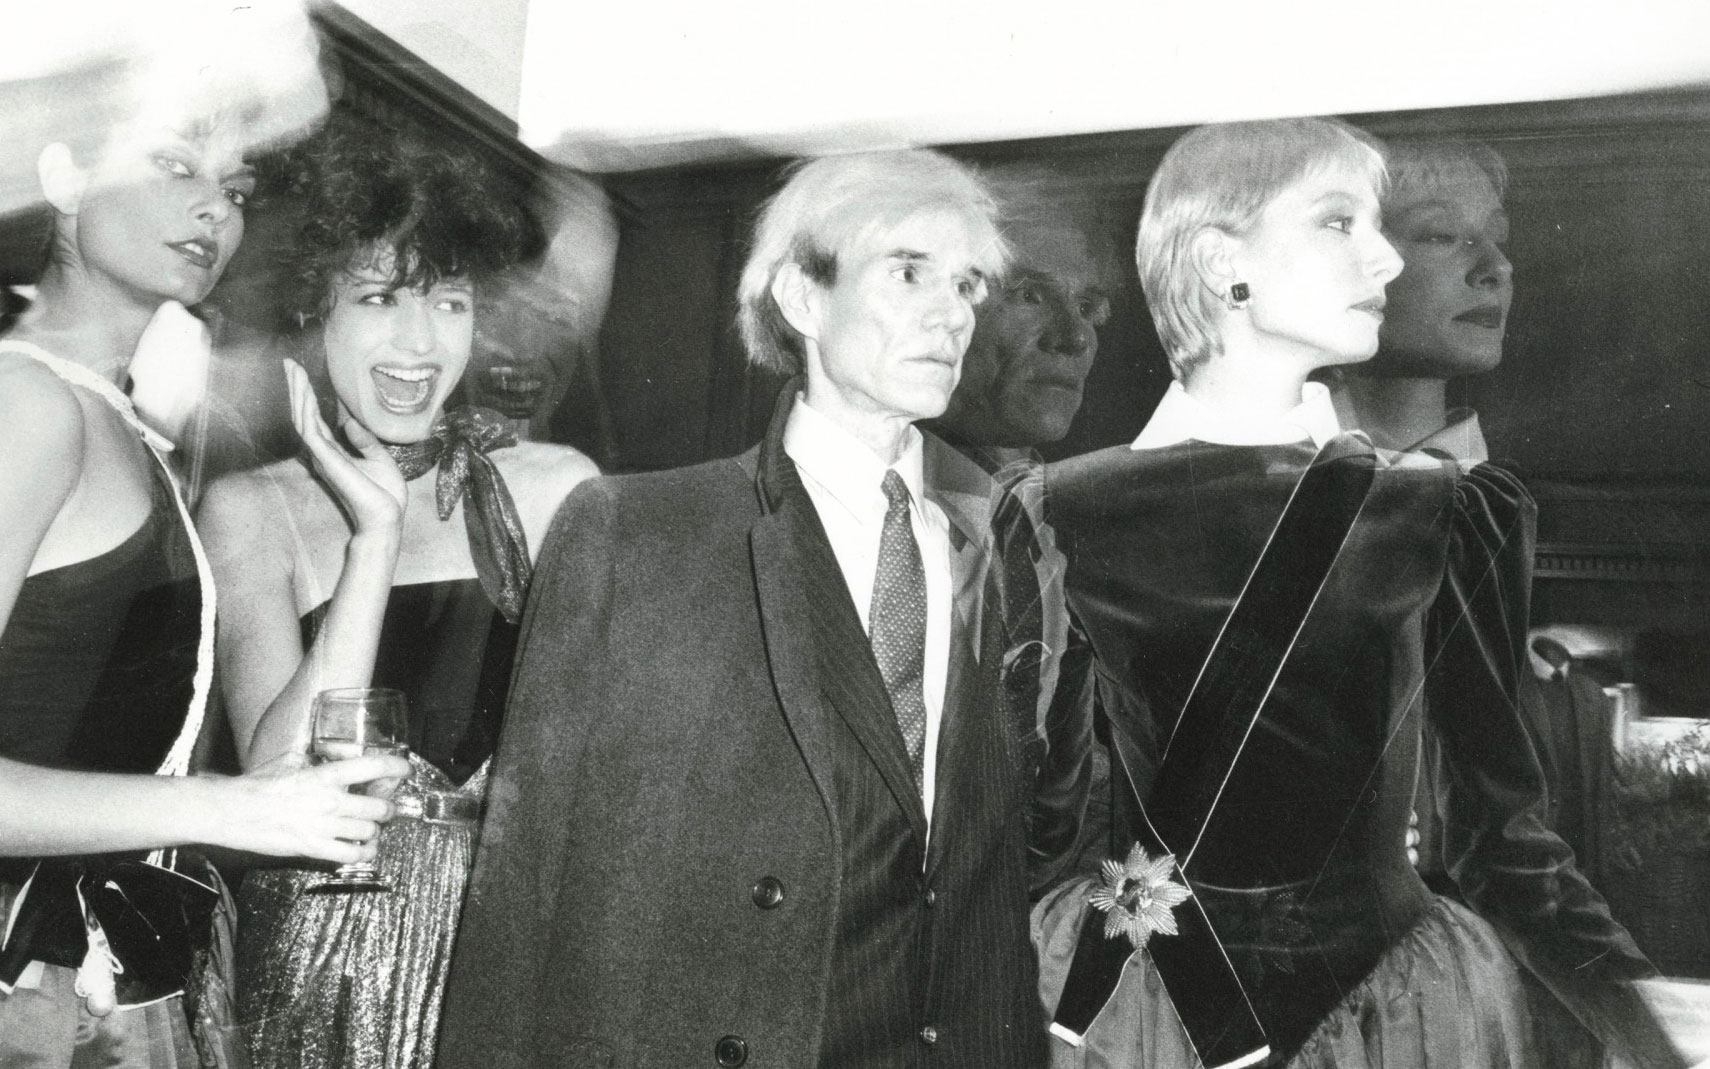 Andy Warhol (1928-1987), Andy Warhol and Models, 1982. Unique gelatin silver print, 8 x 10 in (20.3 x 25.4 cm). Estimate $5,000-7,000. This work is offered in Andy Warhol@Christie's with NYFW